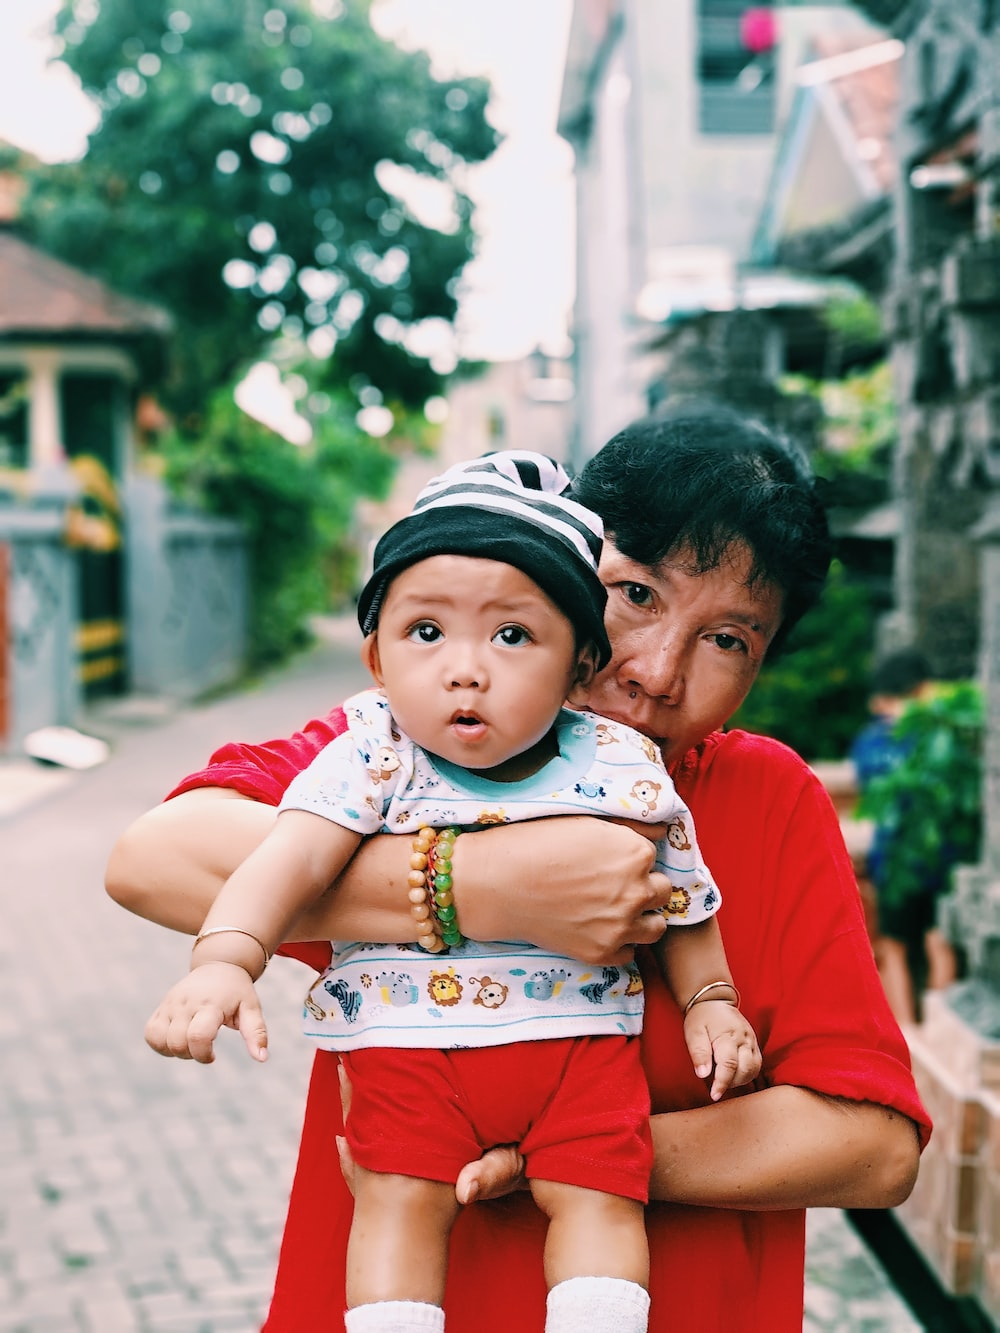 girl wearing red shirt carrying baby outdoor during daytime